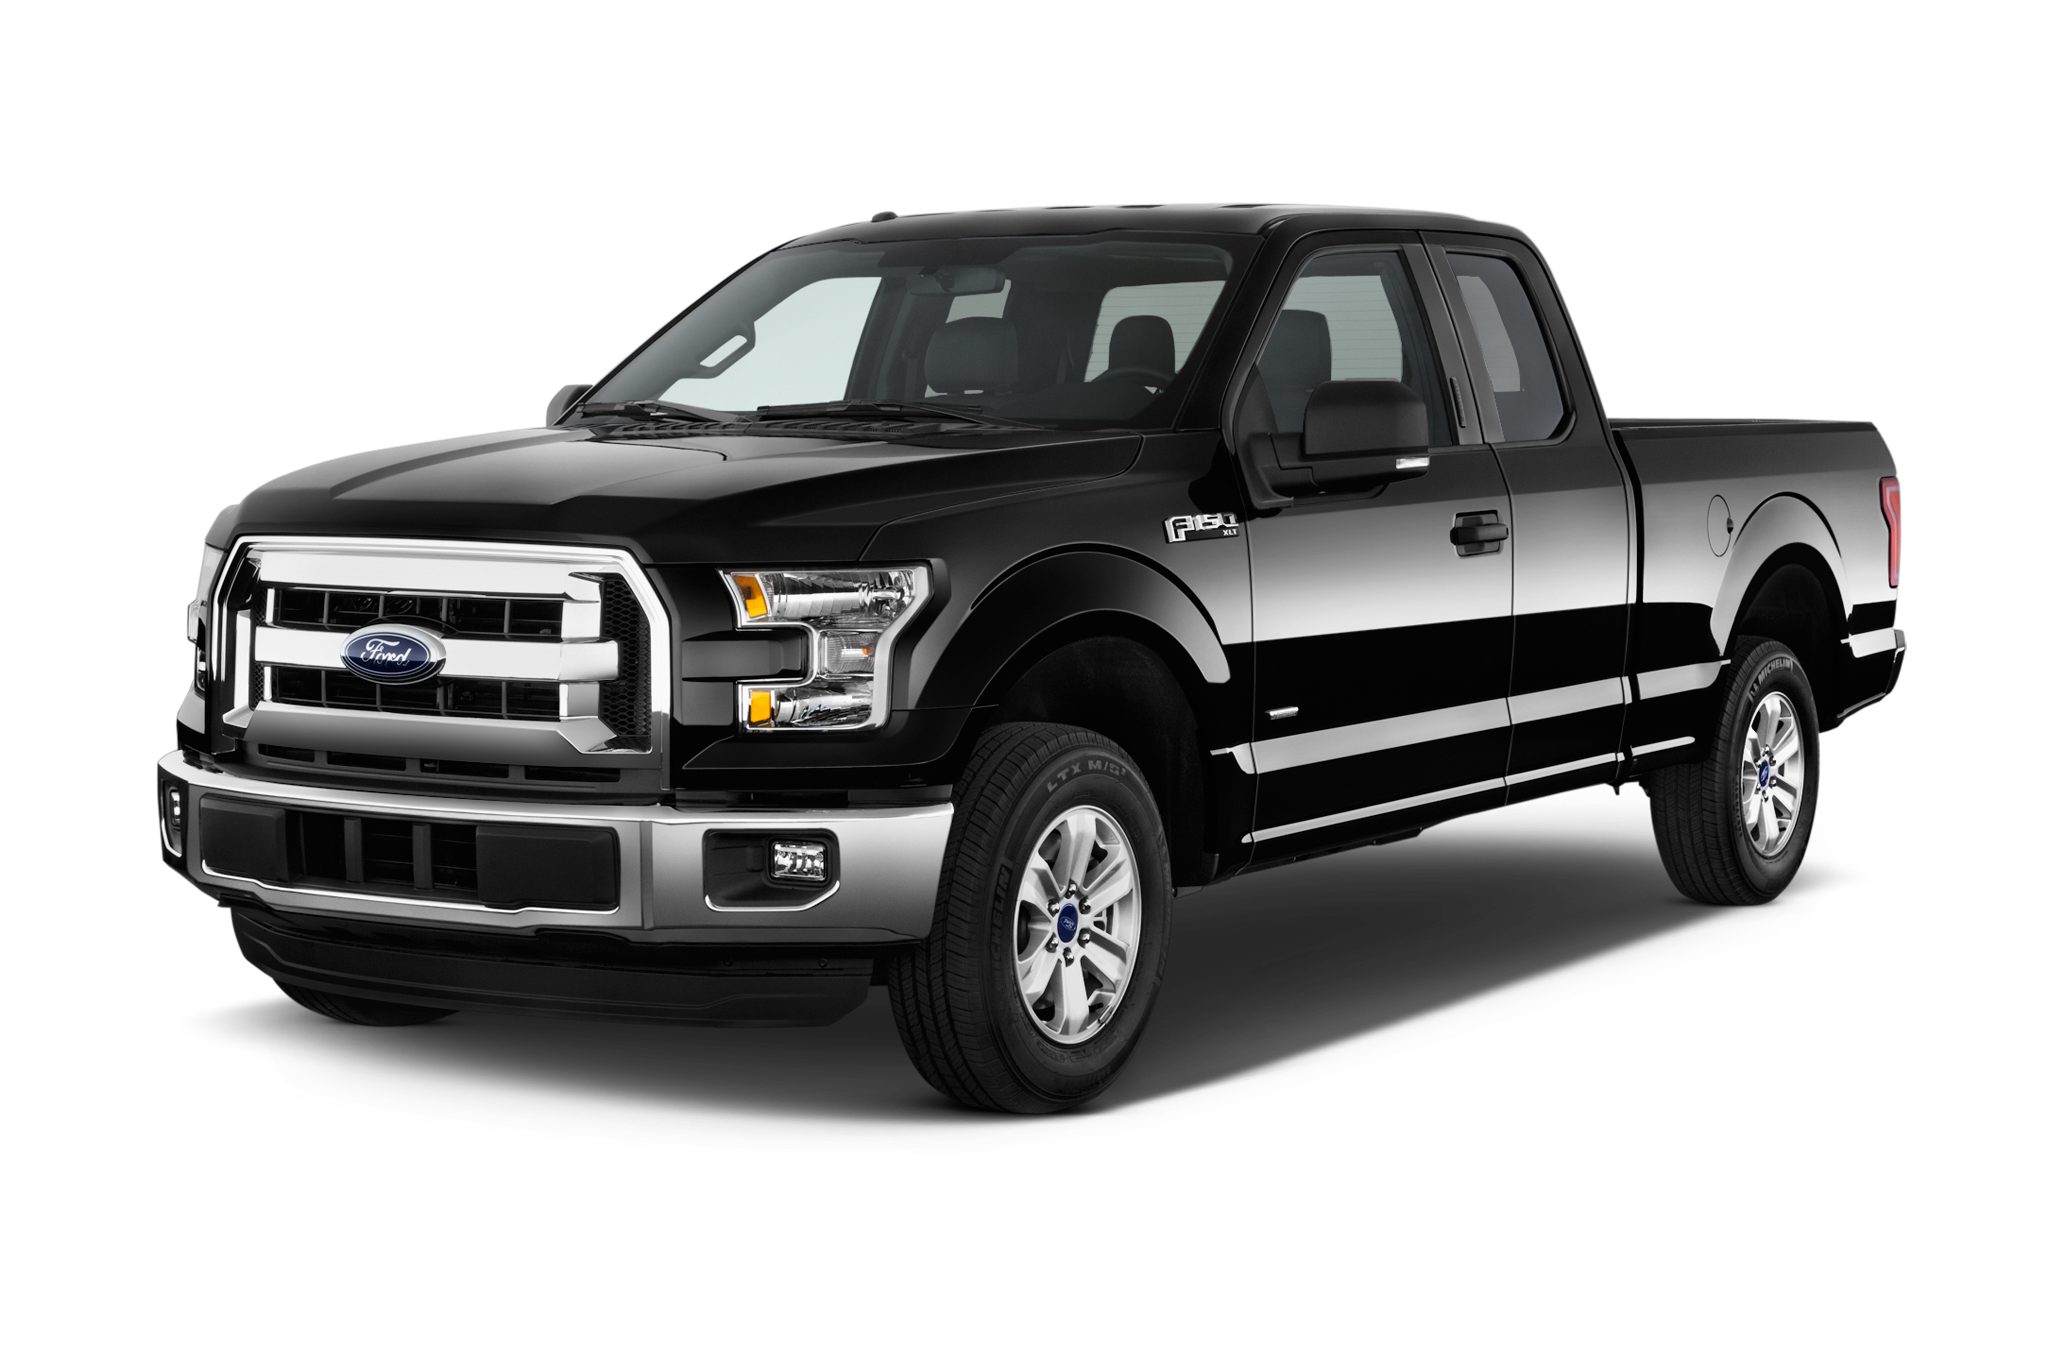 2017 ford f 150 xl 4x4 supercab 145 in specs and features msn autos. Black Bedroom Furniture Sets. Home Design Ideas